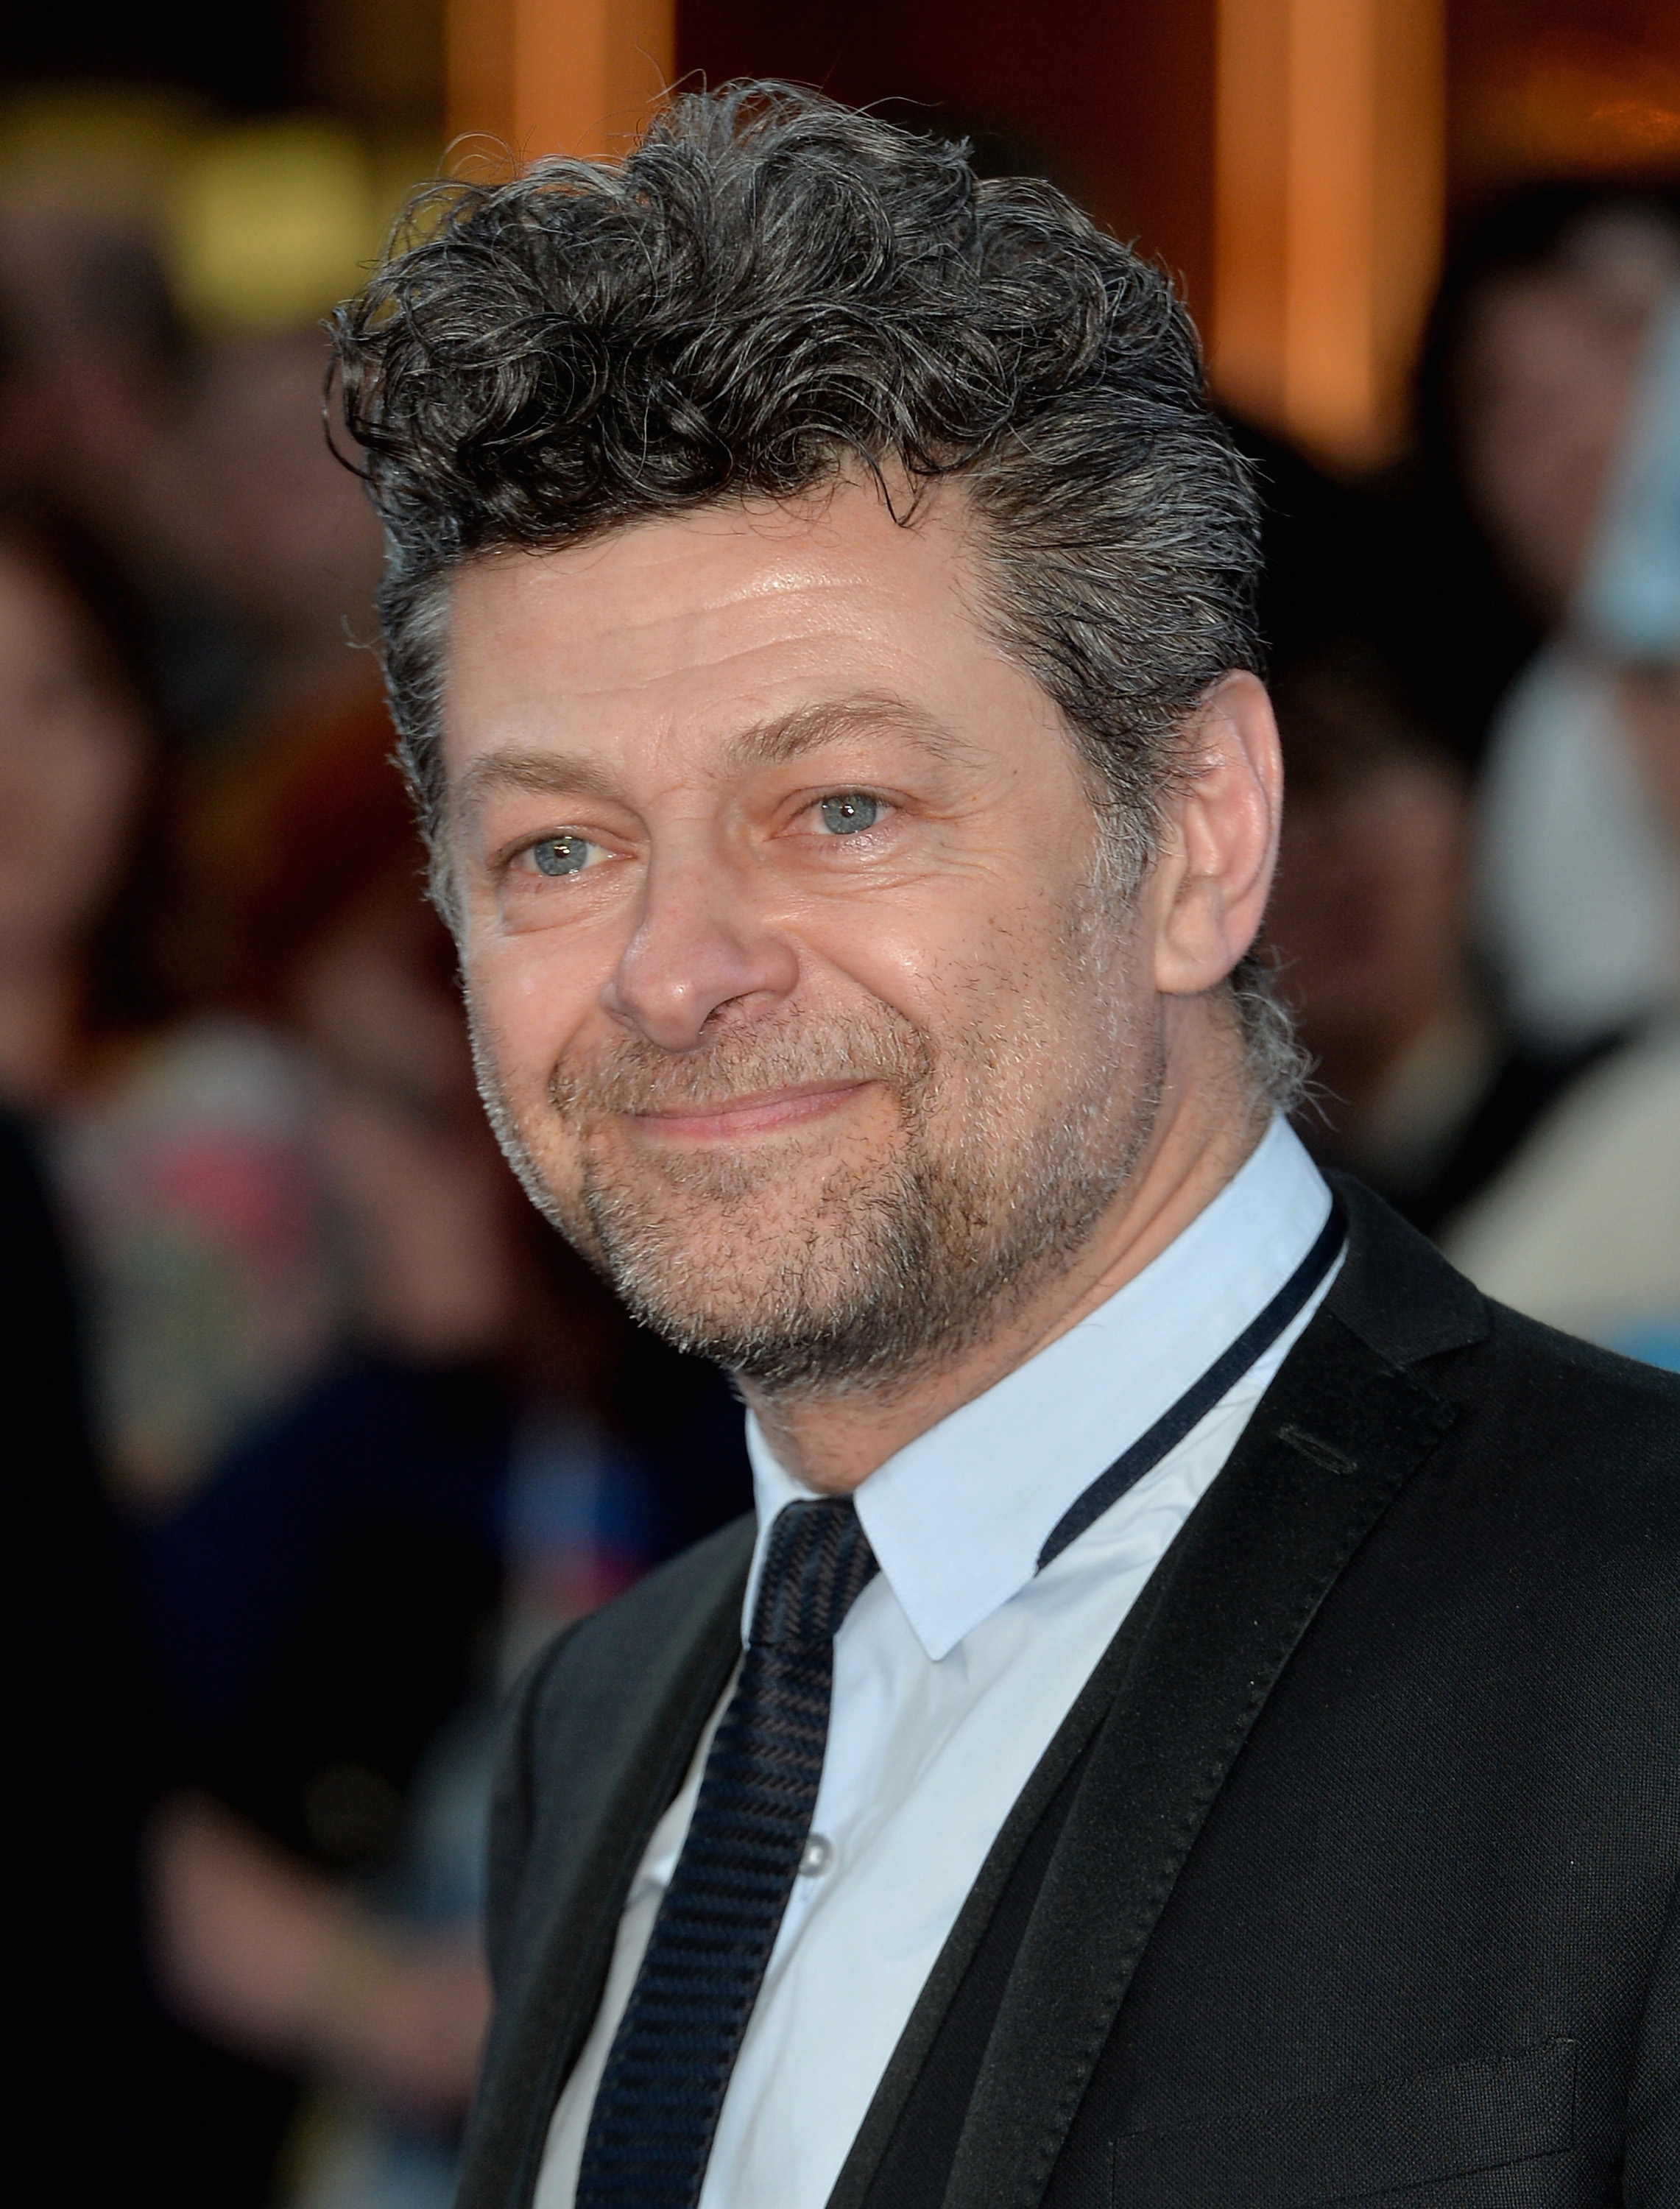 Andy Serkis attends  The Avengers: Age Of Ultron  European premiere at Westfield London on April 21, 2015 in London.